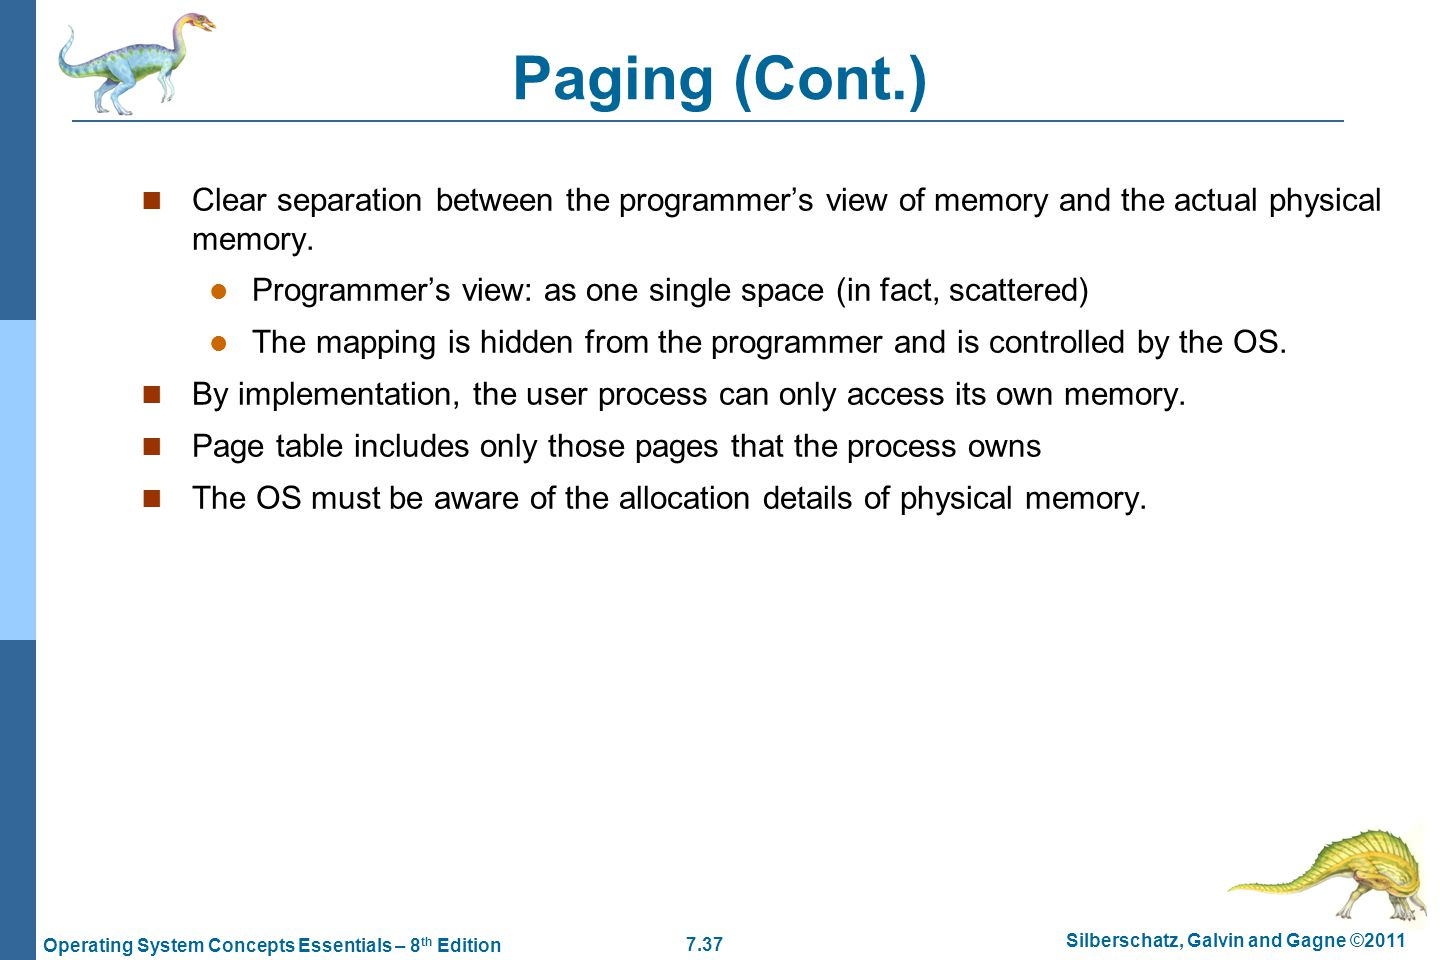 Paging (Cont.) Clear separation between the programmer's view of memory and the actual physical memory.